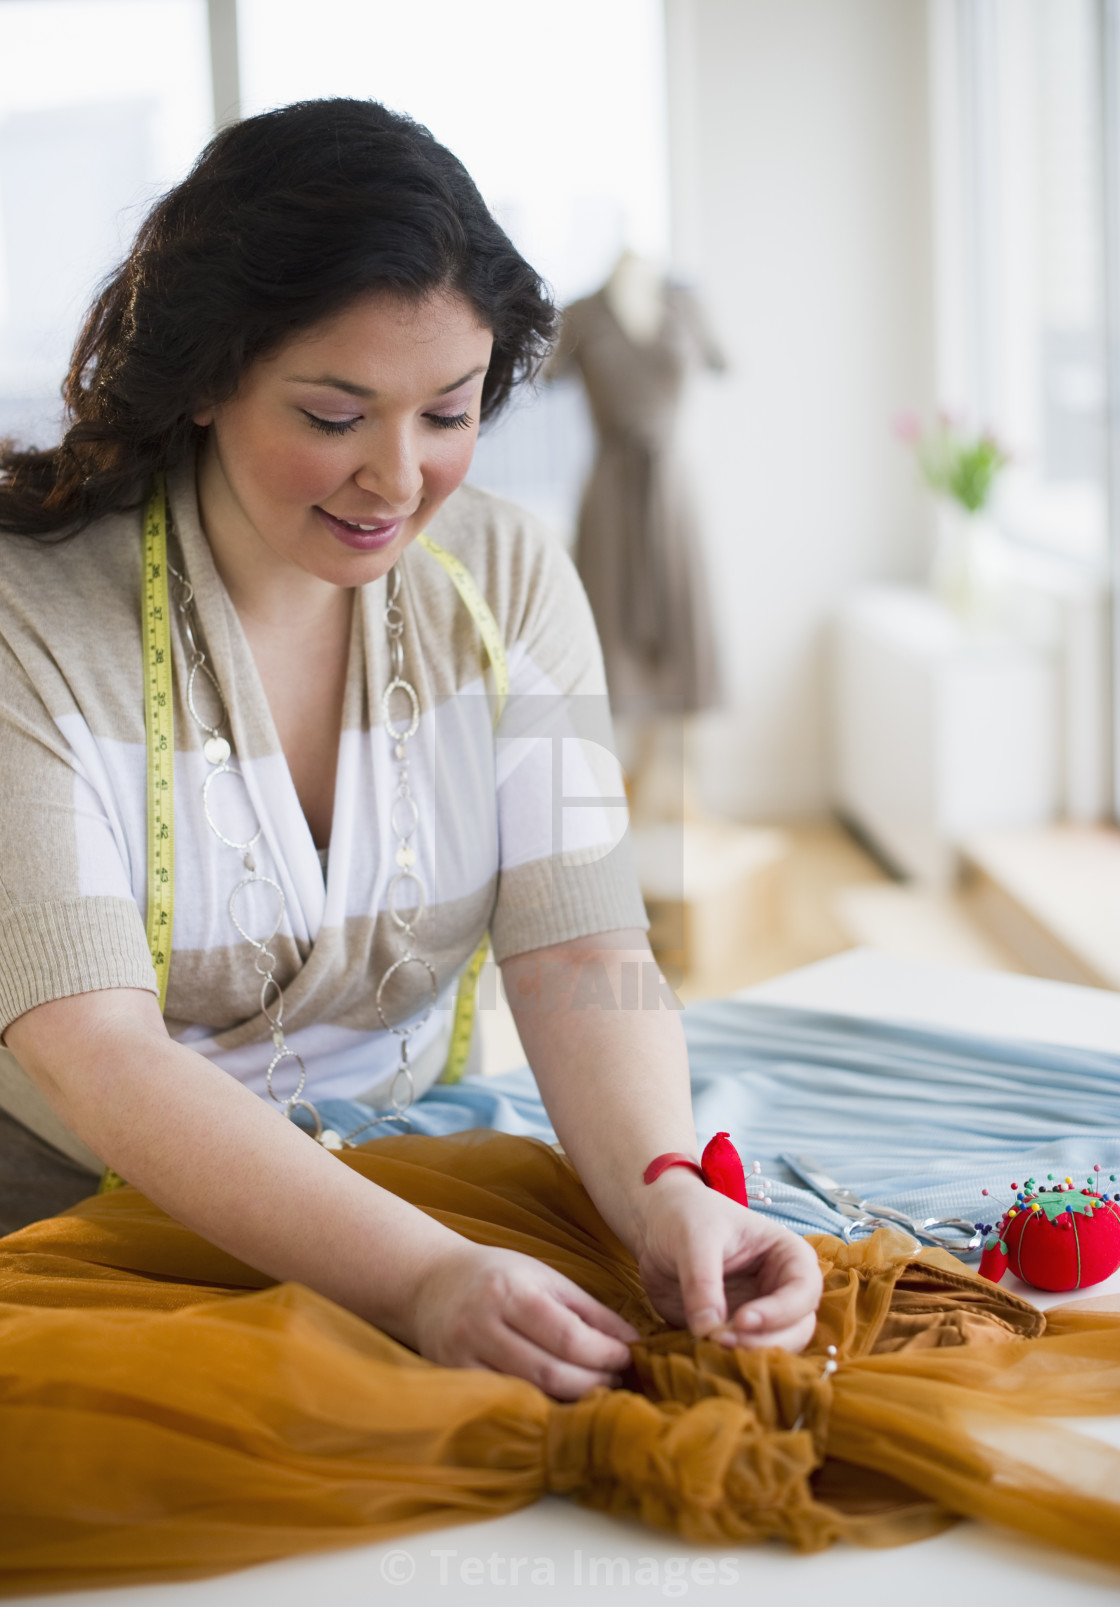 """Tailor mending a dress"" stock image"